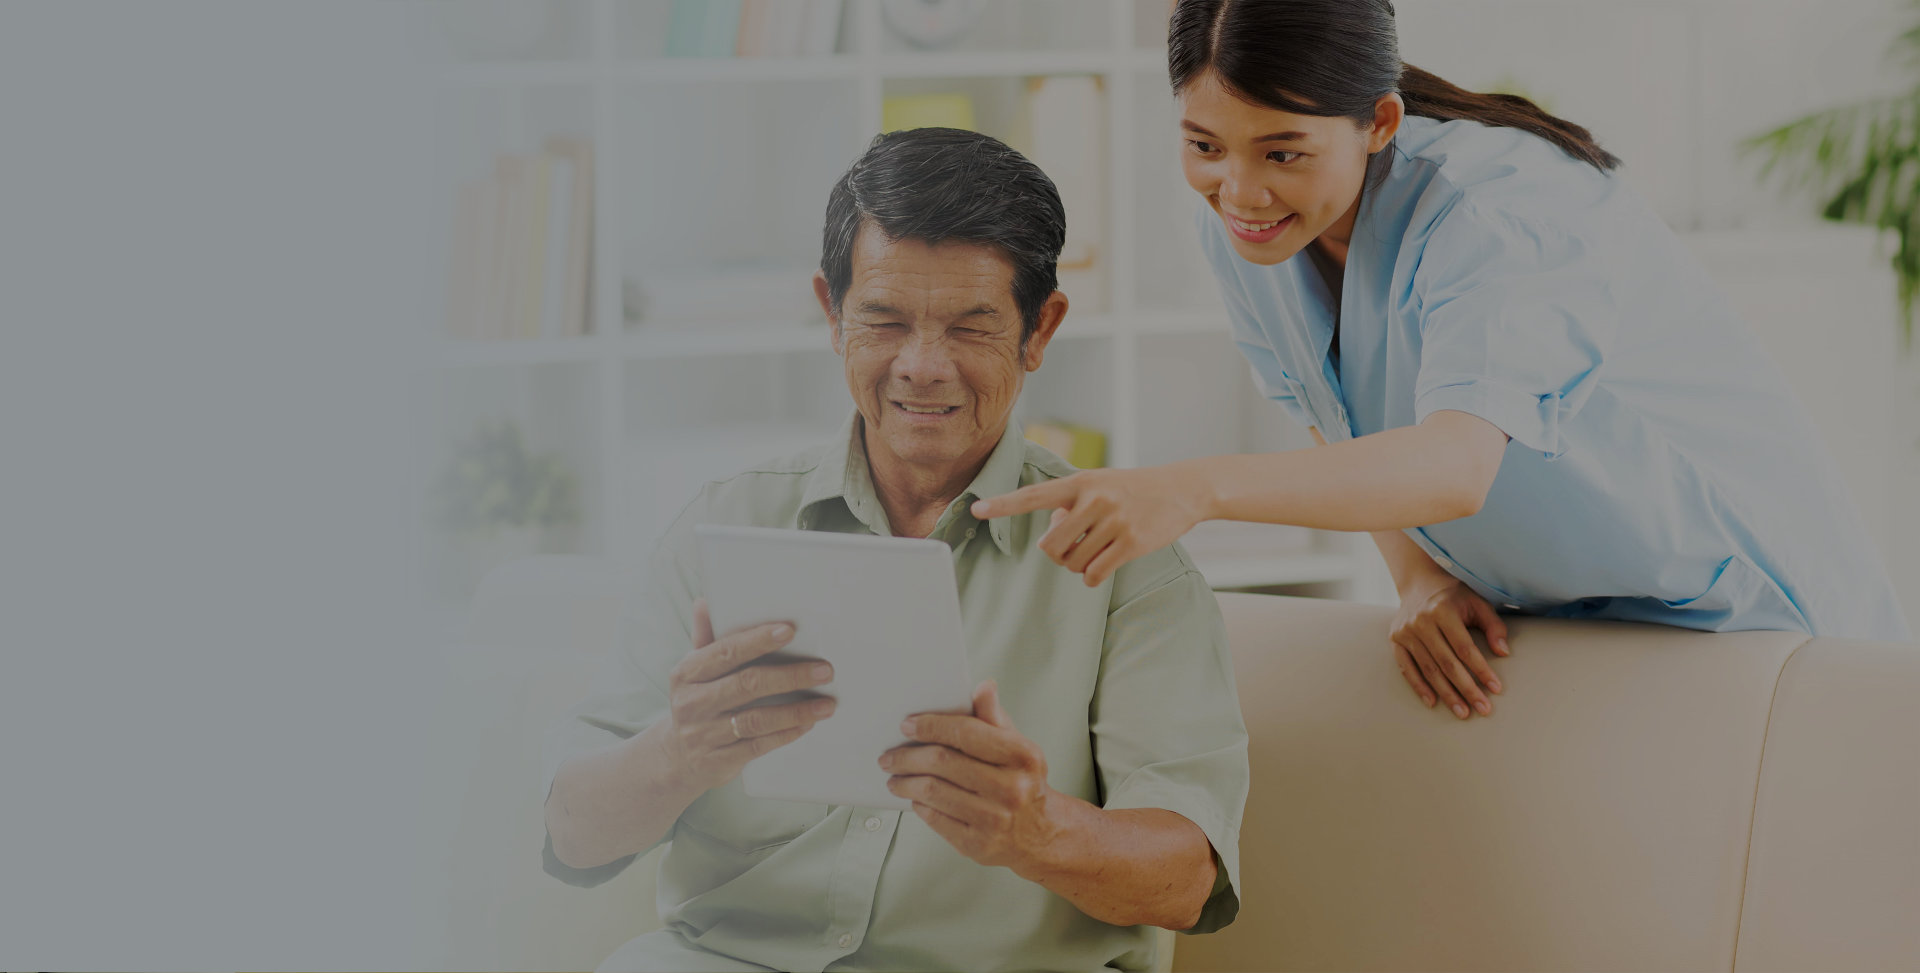 Caregiver teaching senior how to use a tablet